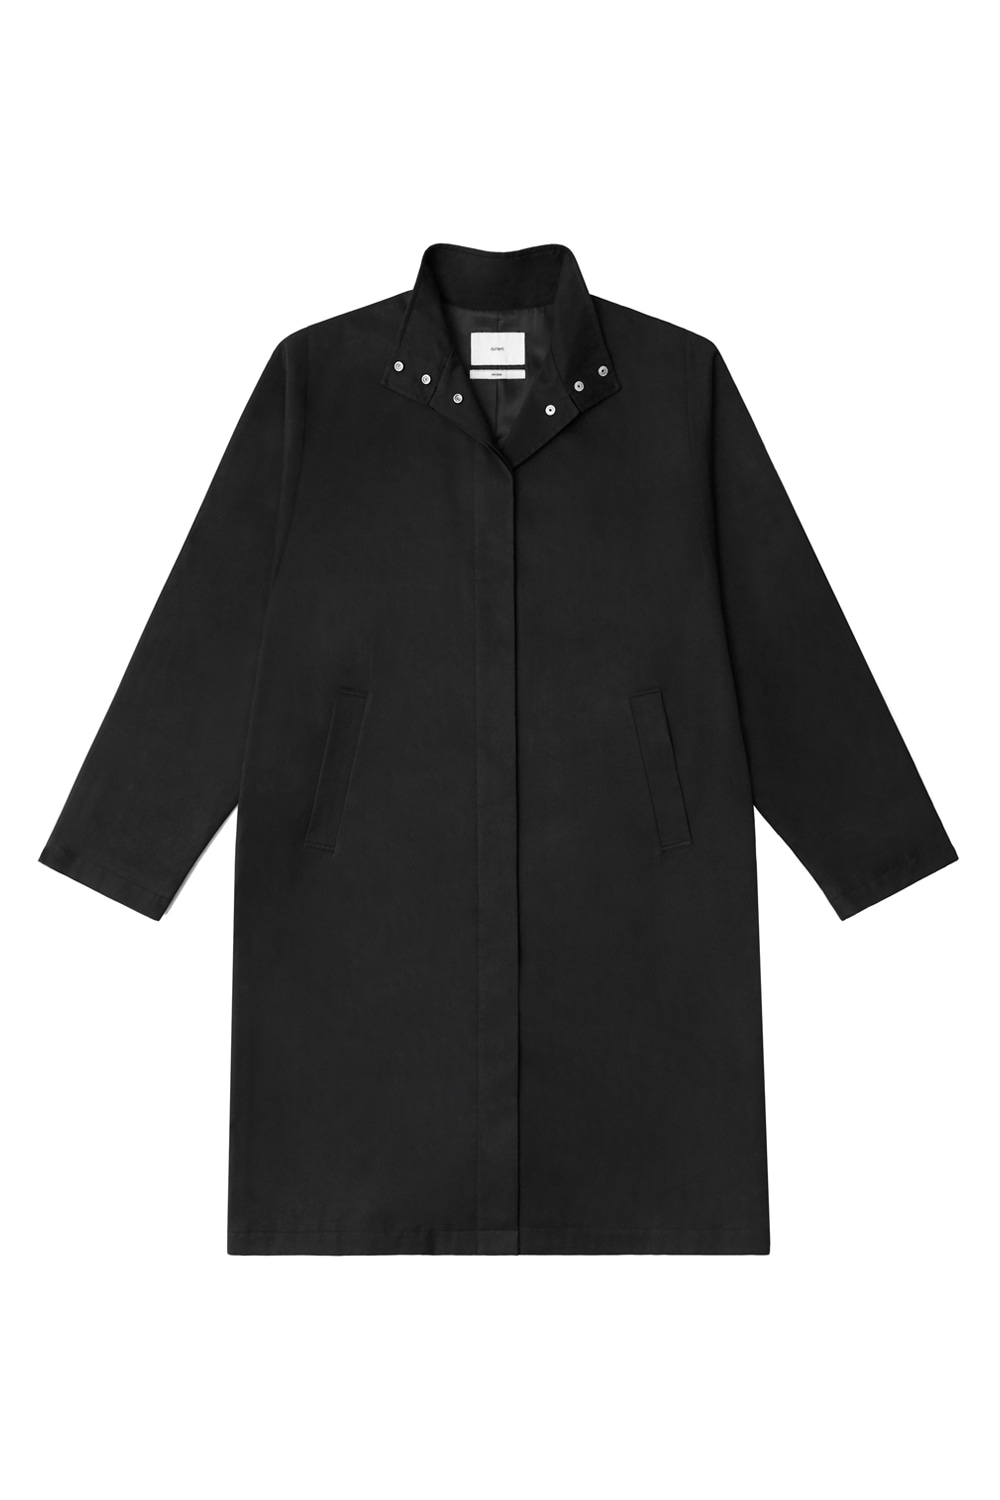 Mod Coat Women [Black]